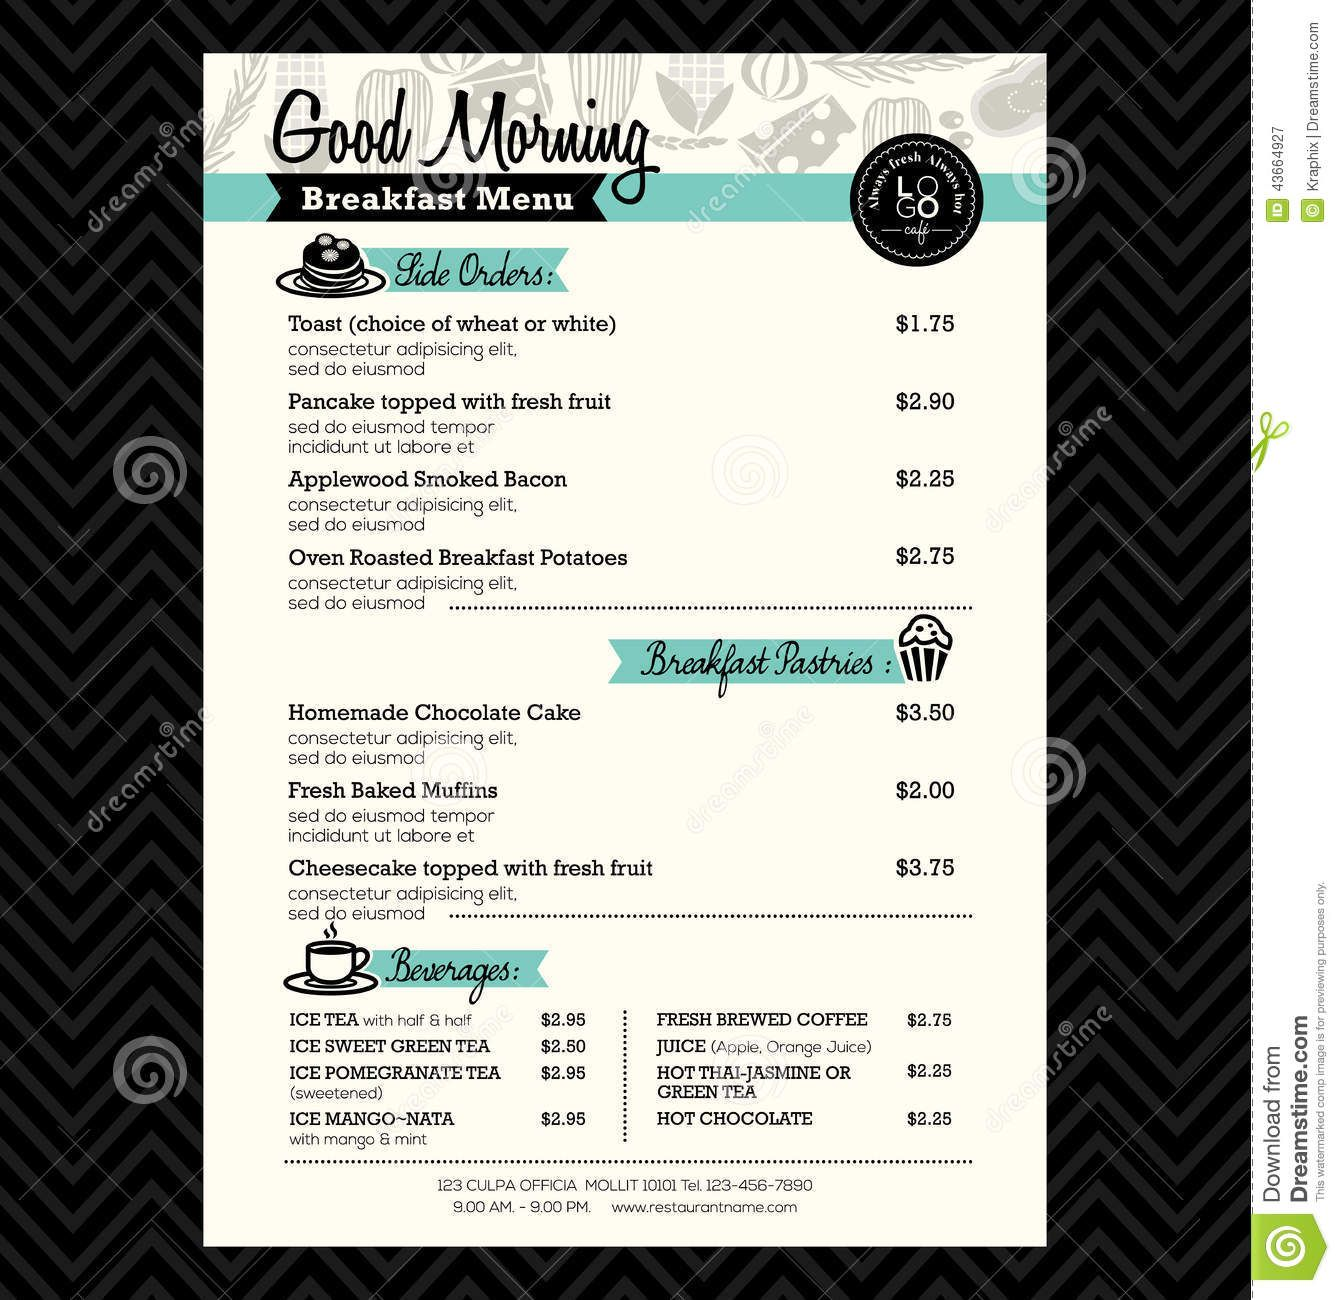 breakfast menu design ideas - google search | menu design | menu